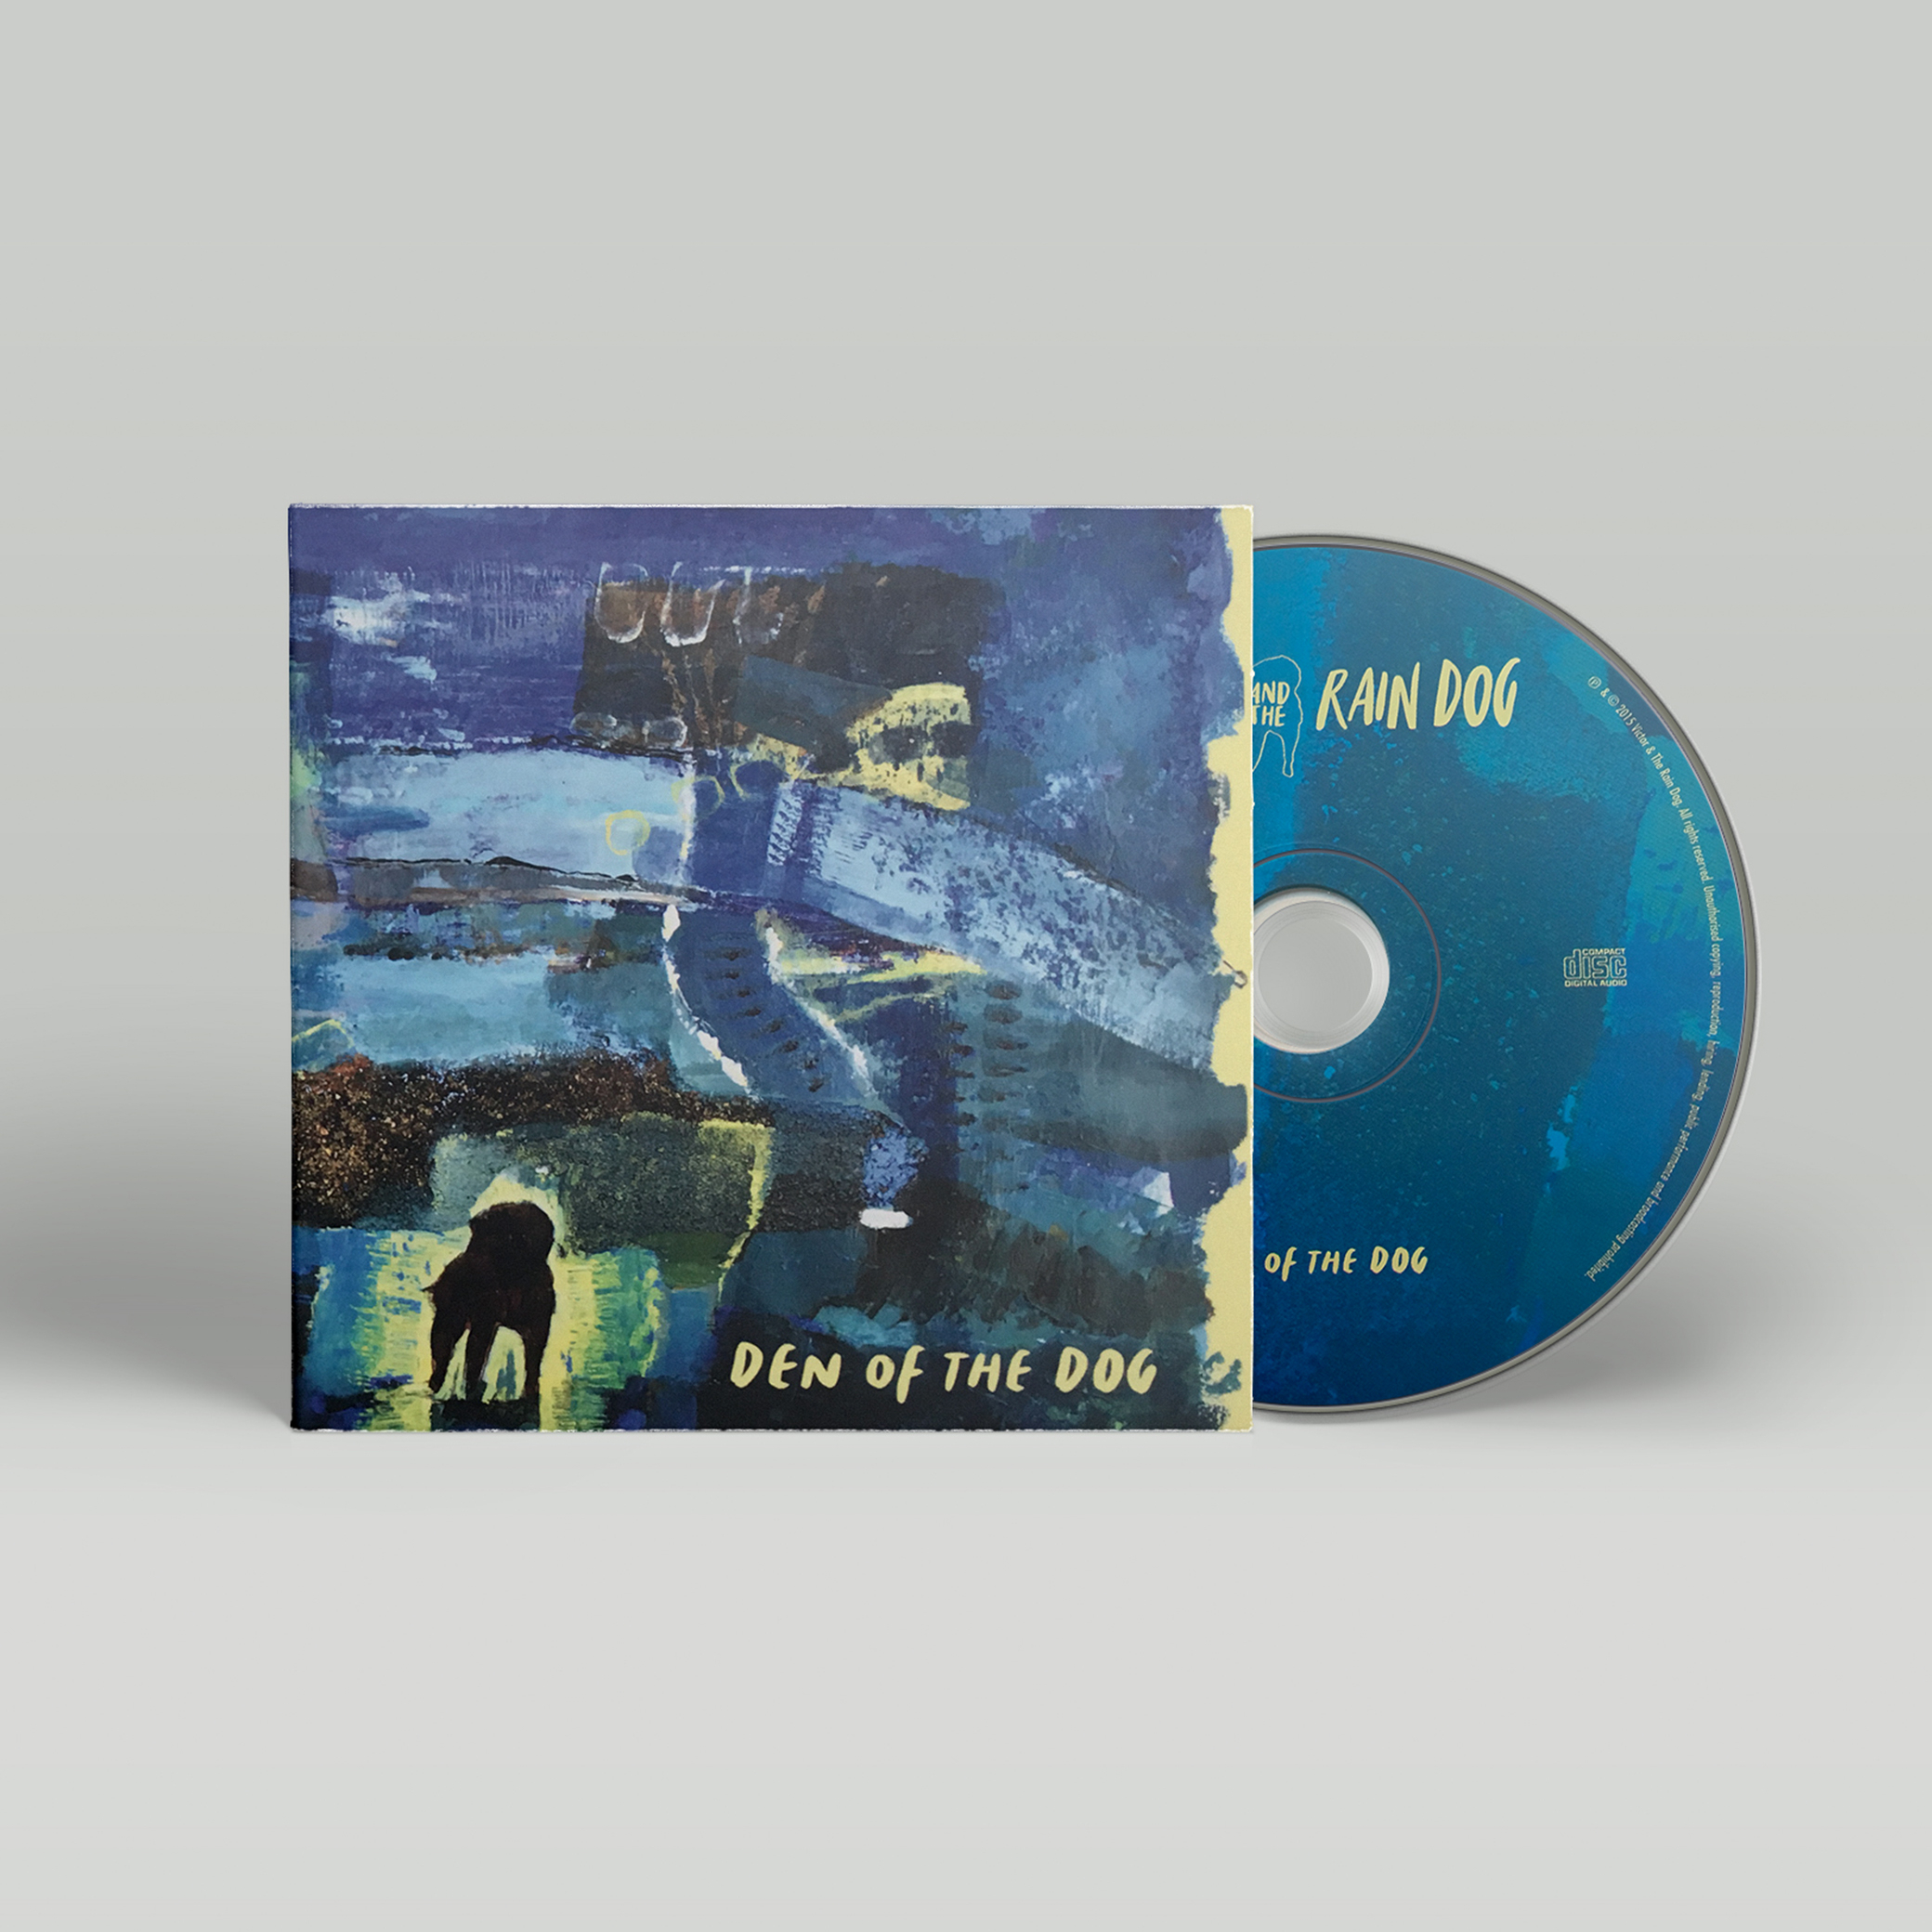 Den Of The Dog - Limited edition CD by Victor & The Rain Dog, available in our store